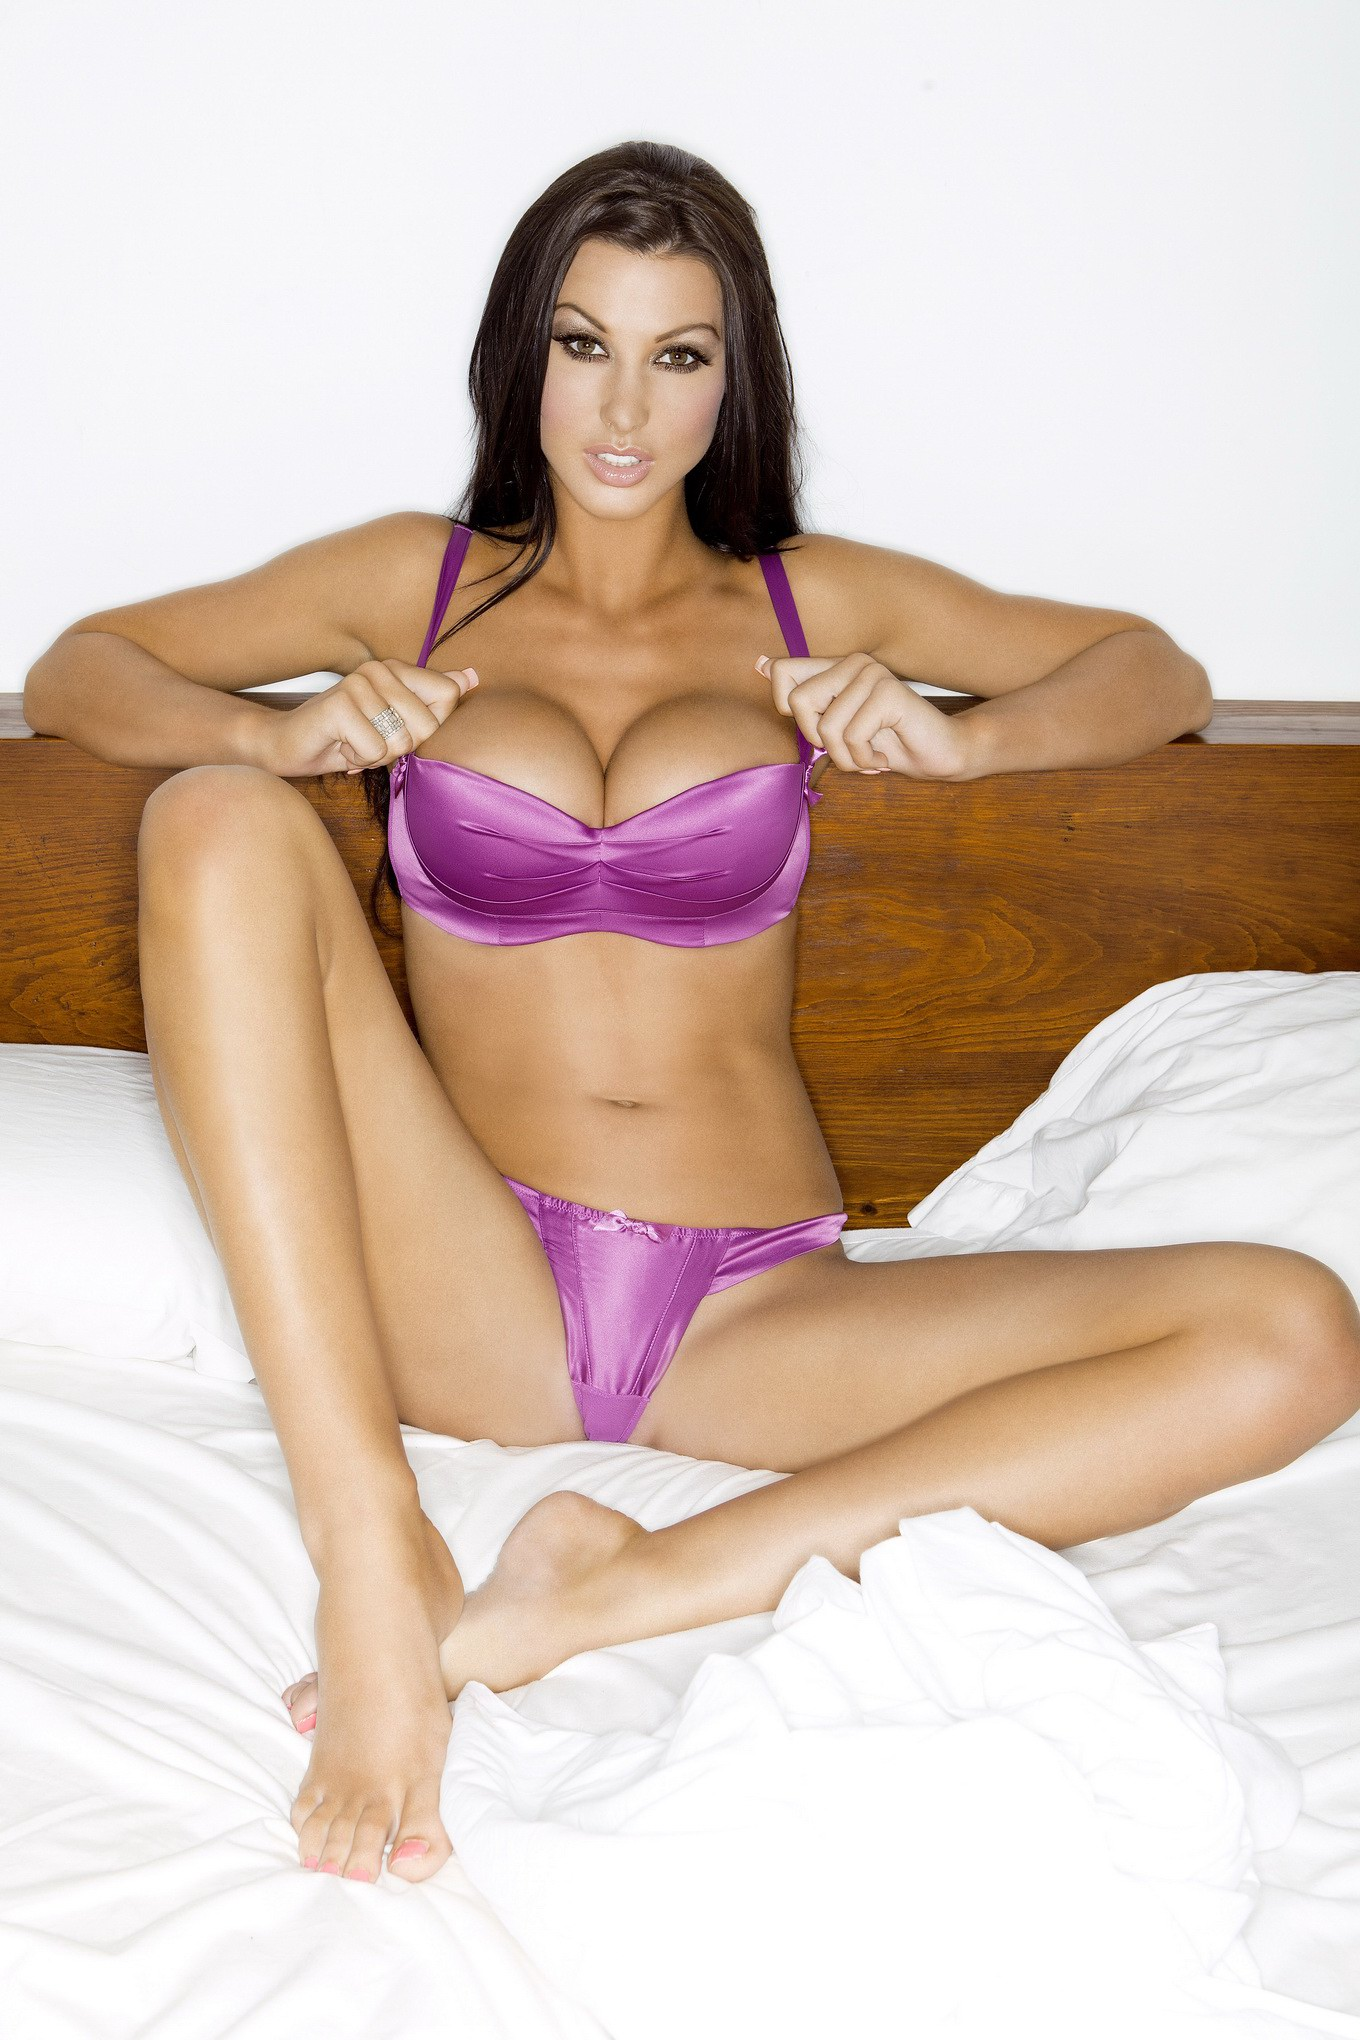 Lavender Bedroom Alice Goodwin Bares Her Curvy Body At New Ketchup Photoshoot